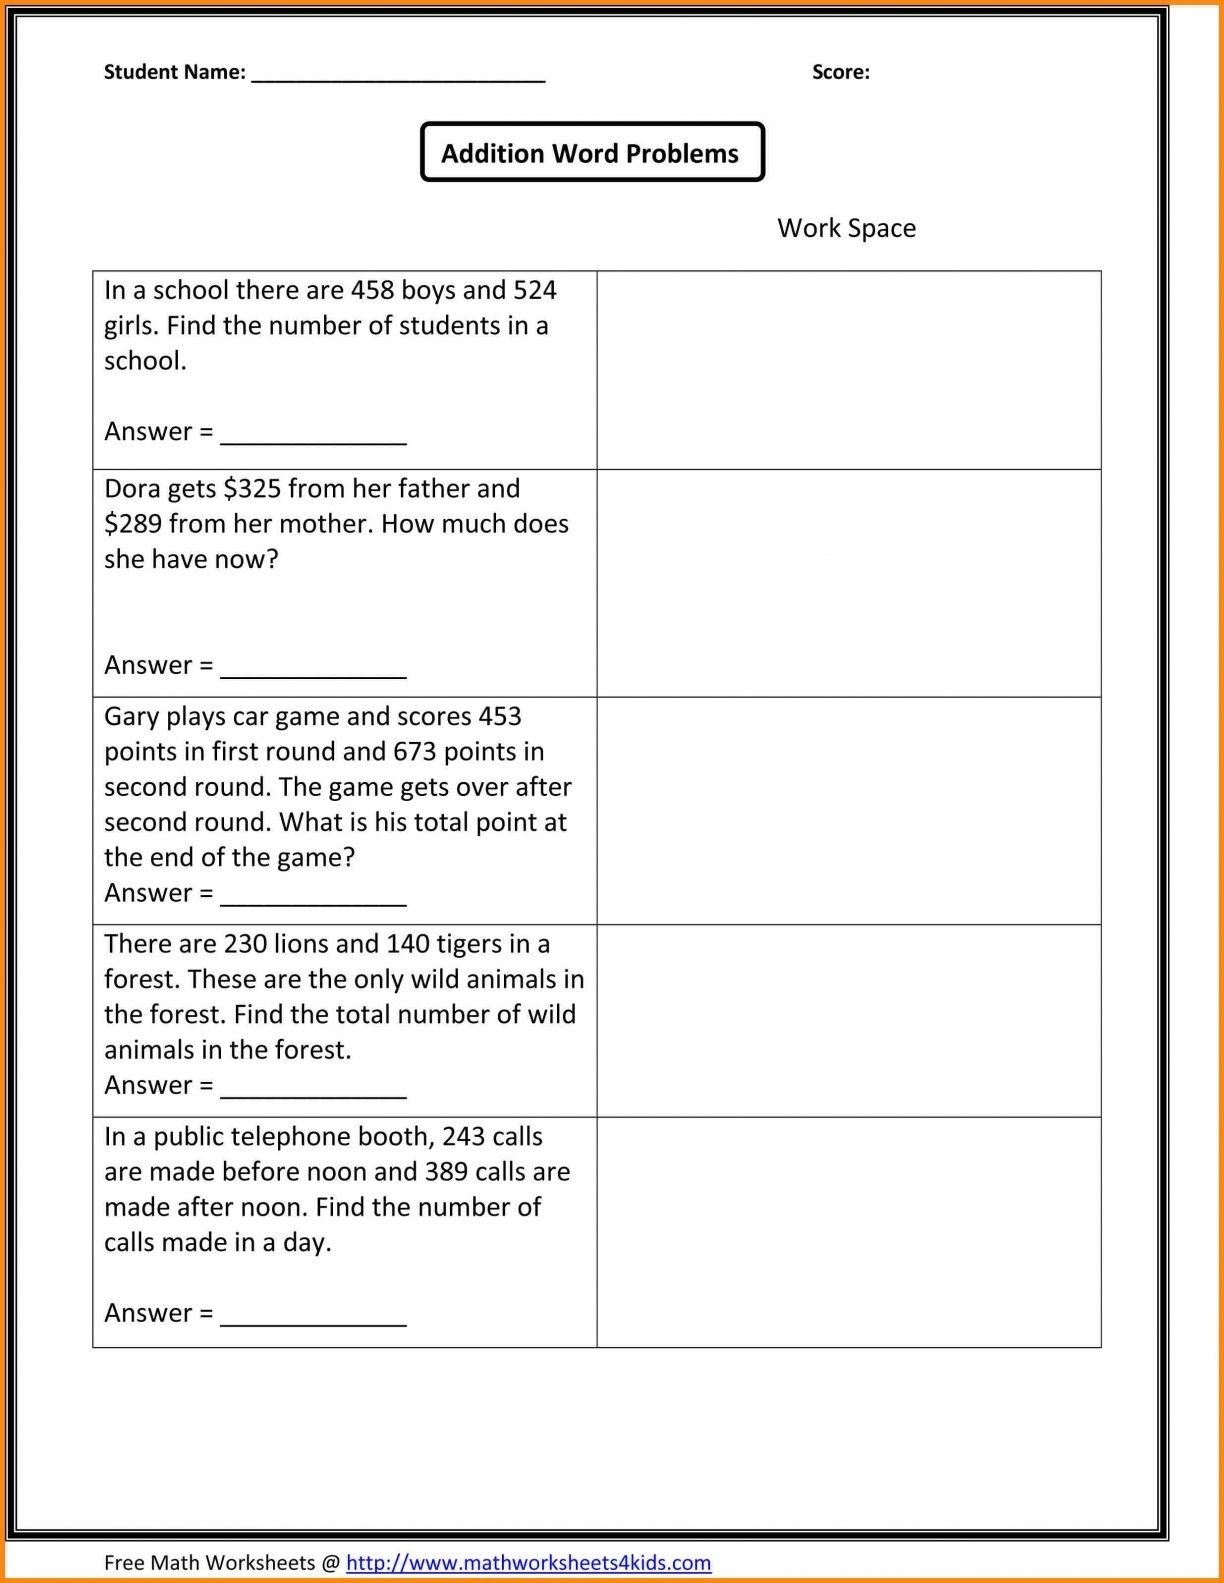 8th Grade Language Arts Worksheets Worksheet Munity Helpers Report Card Remarks for